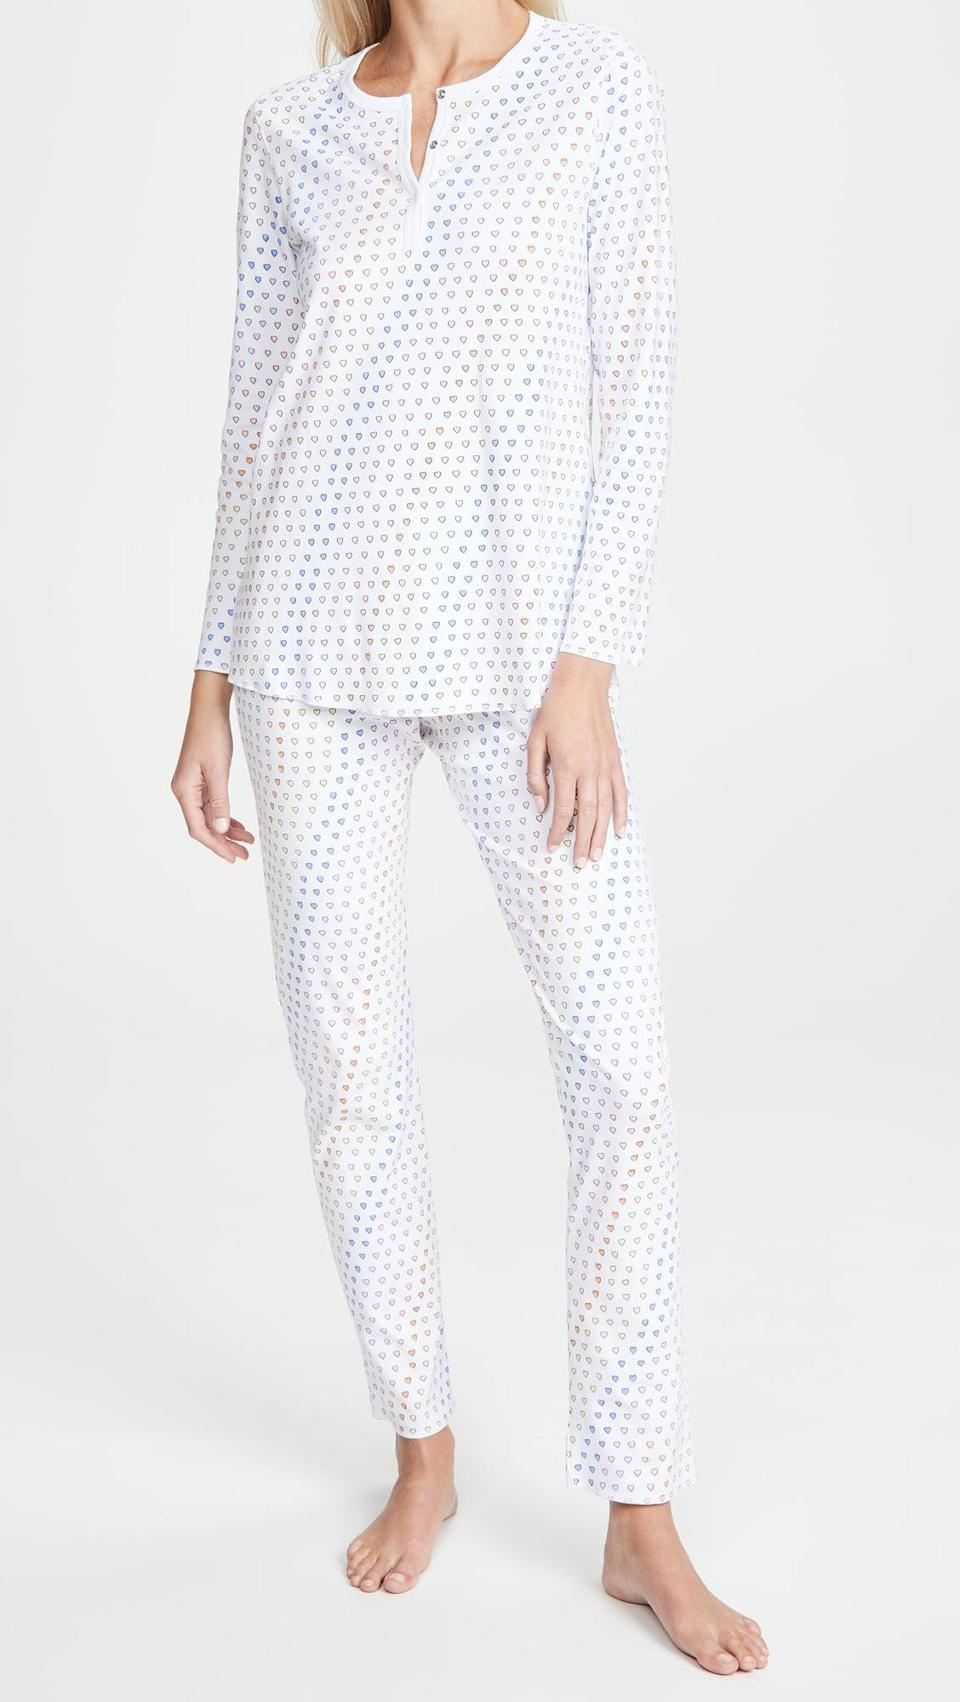 <p>These <span>Roller Rabbit Disco Hearts Pajamas</span> ($118) are cozy and fun. The rainbow hearts make us smile.</p>